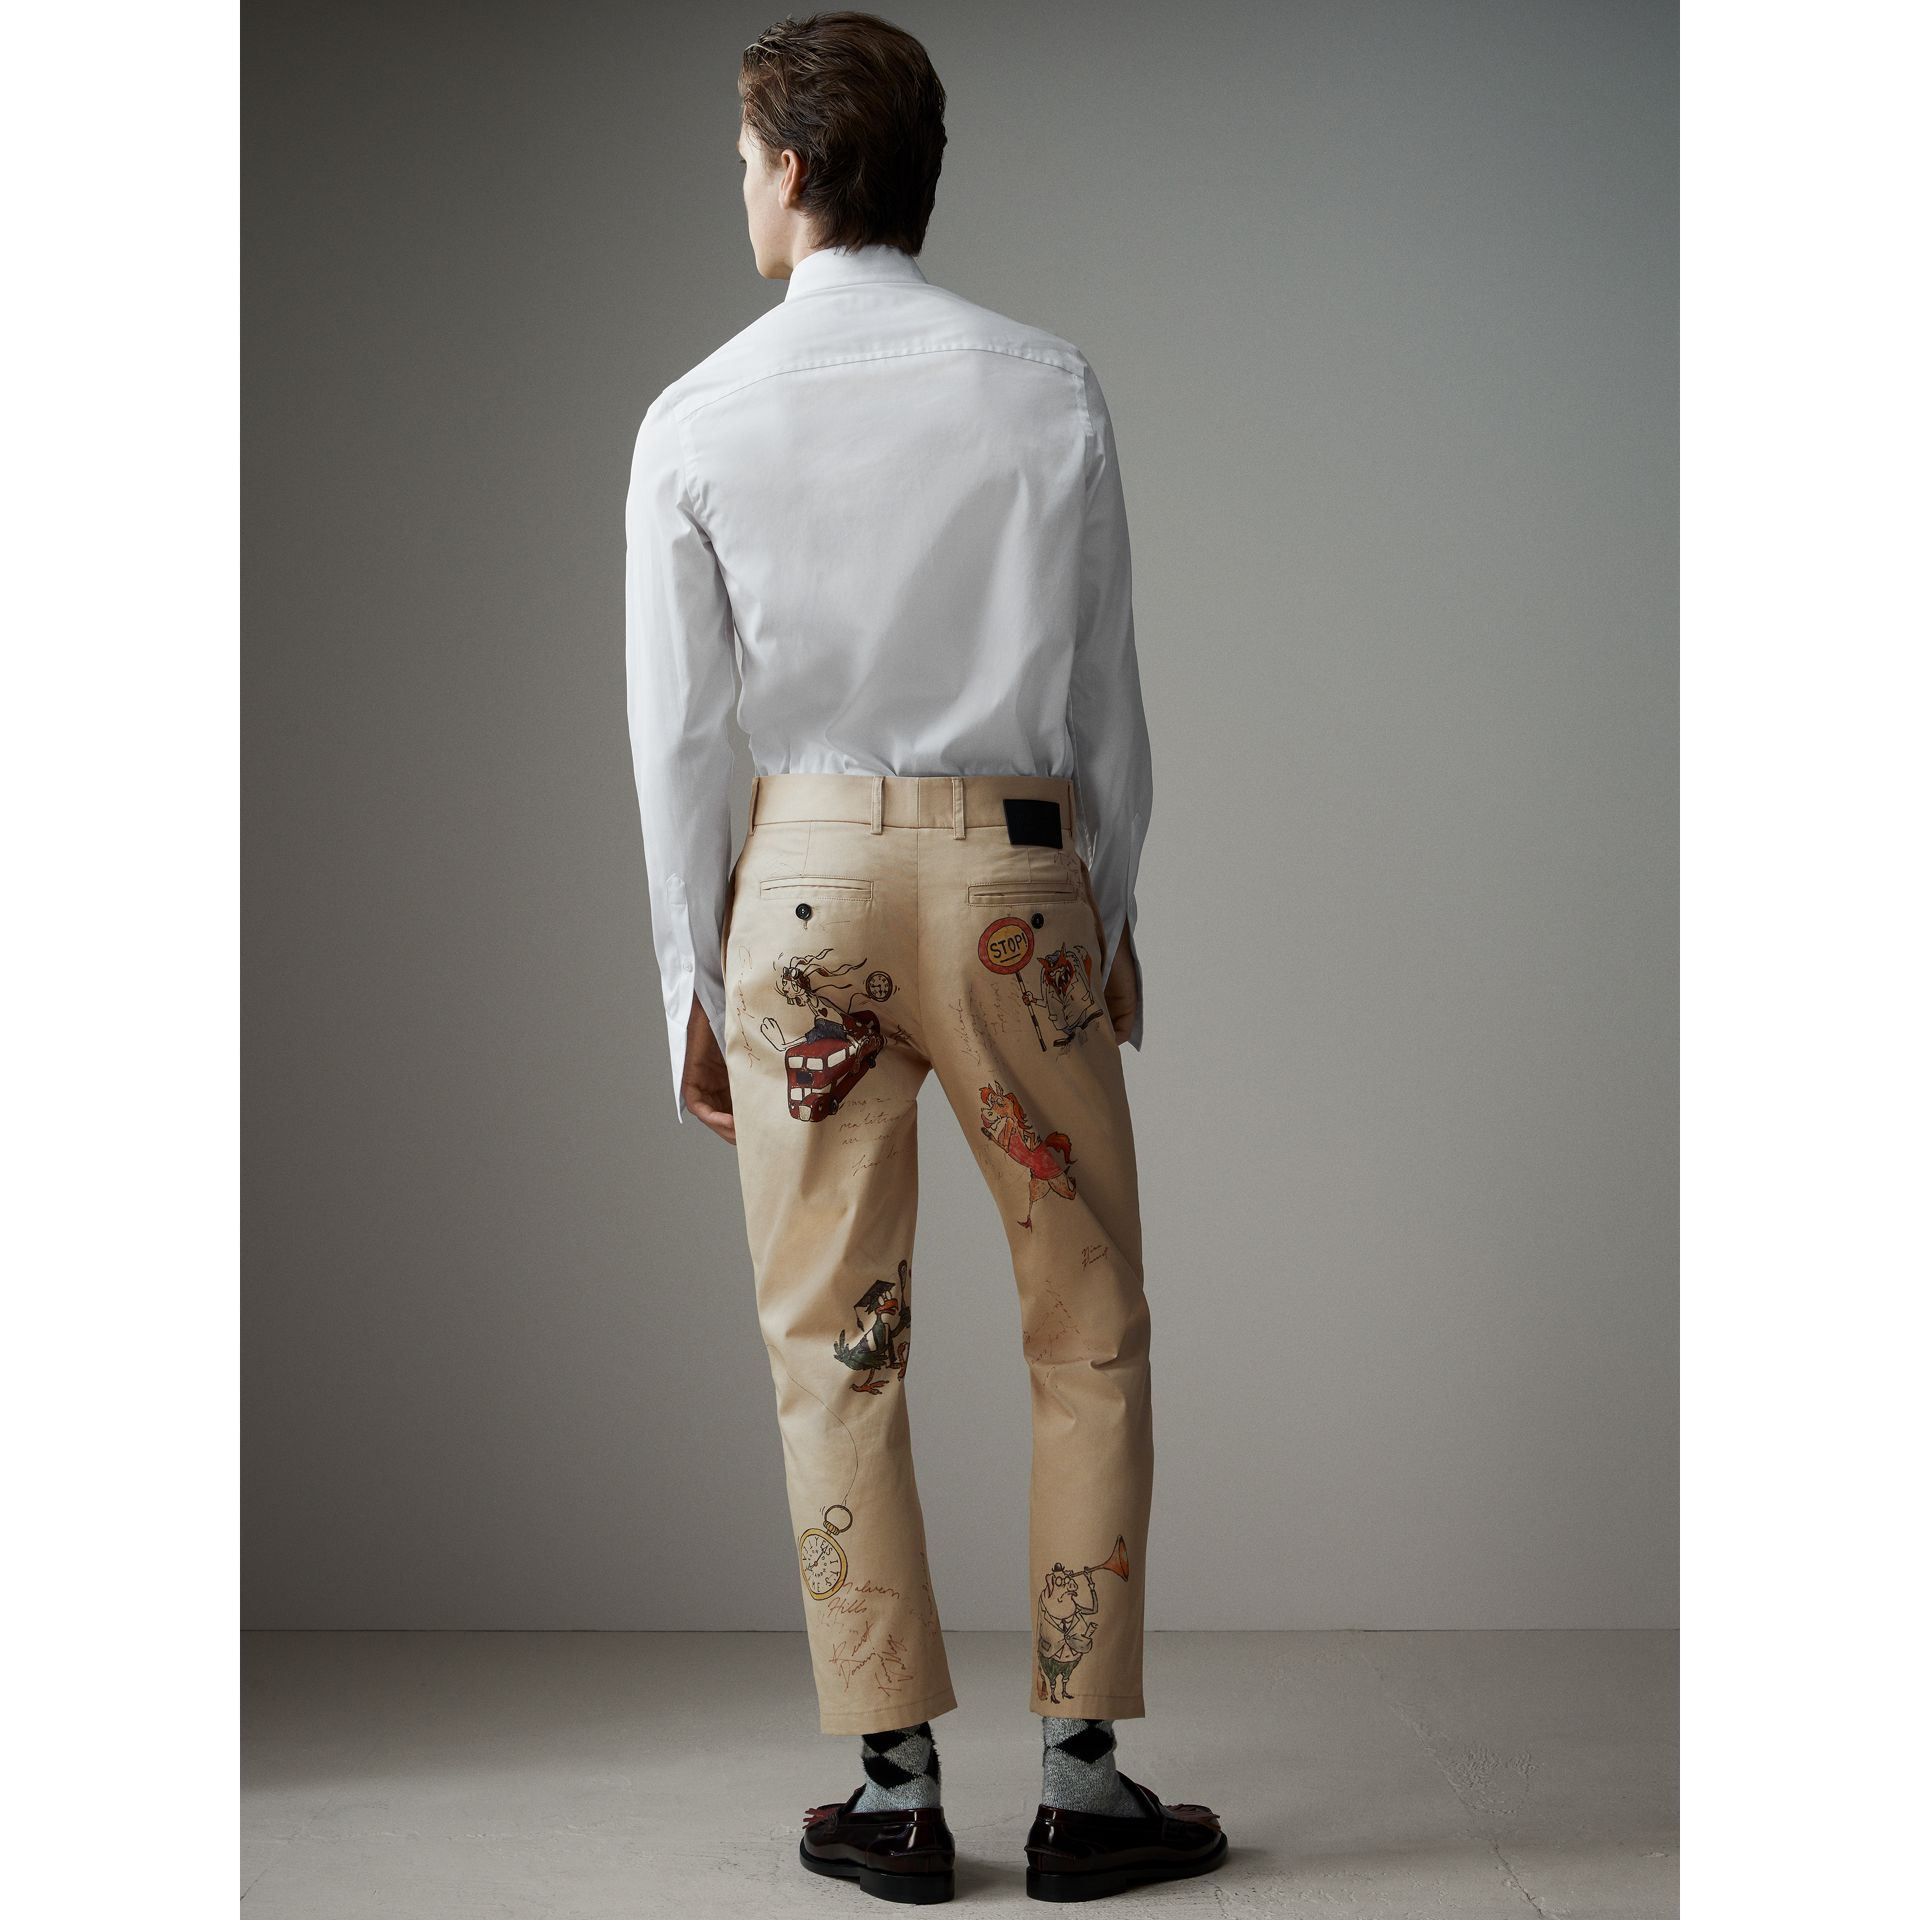 Pantalon chino 7/8 en coton à motif humoristique (Sable) - Homme | Burberry - photo de la galerie 3